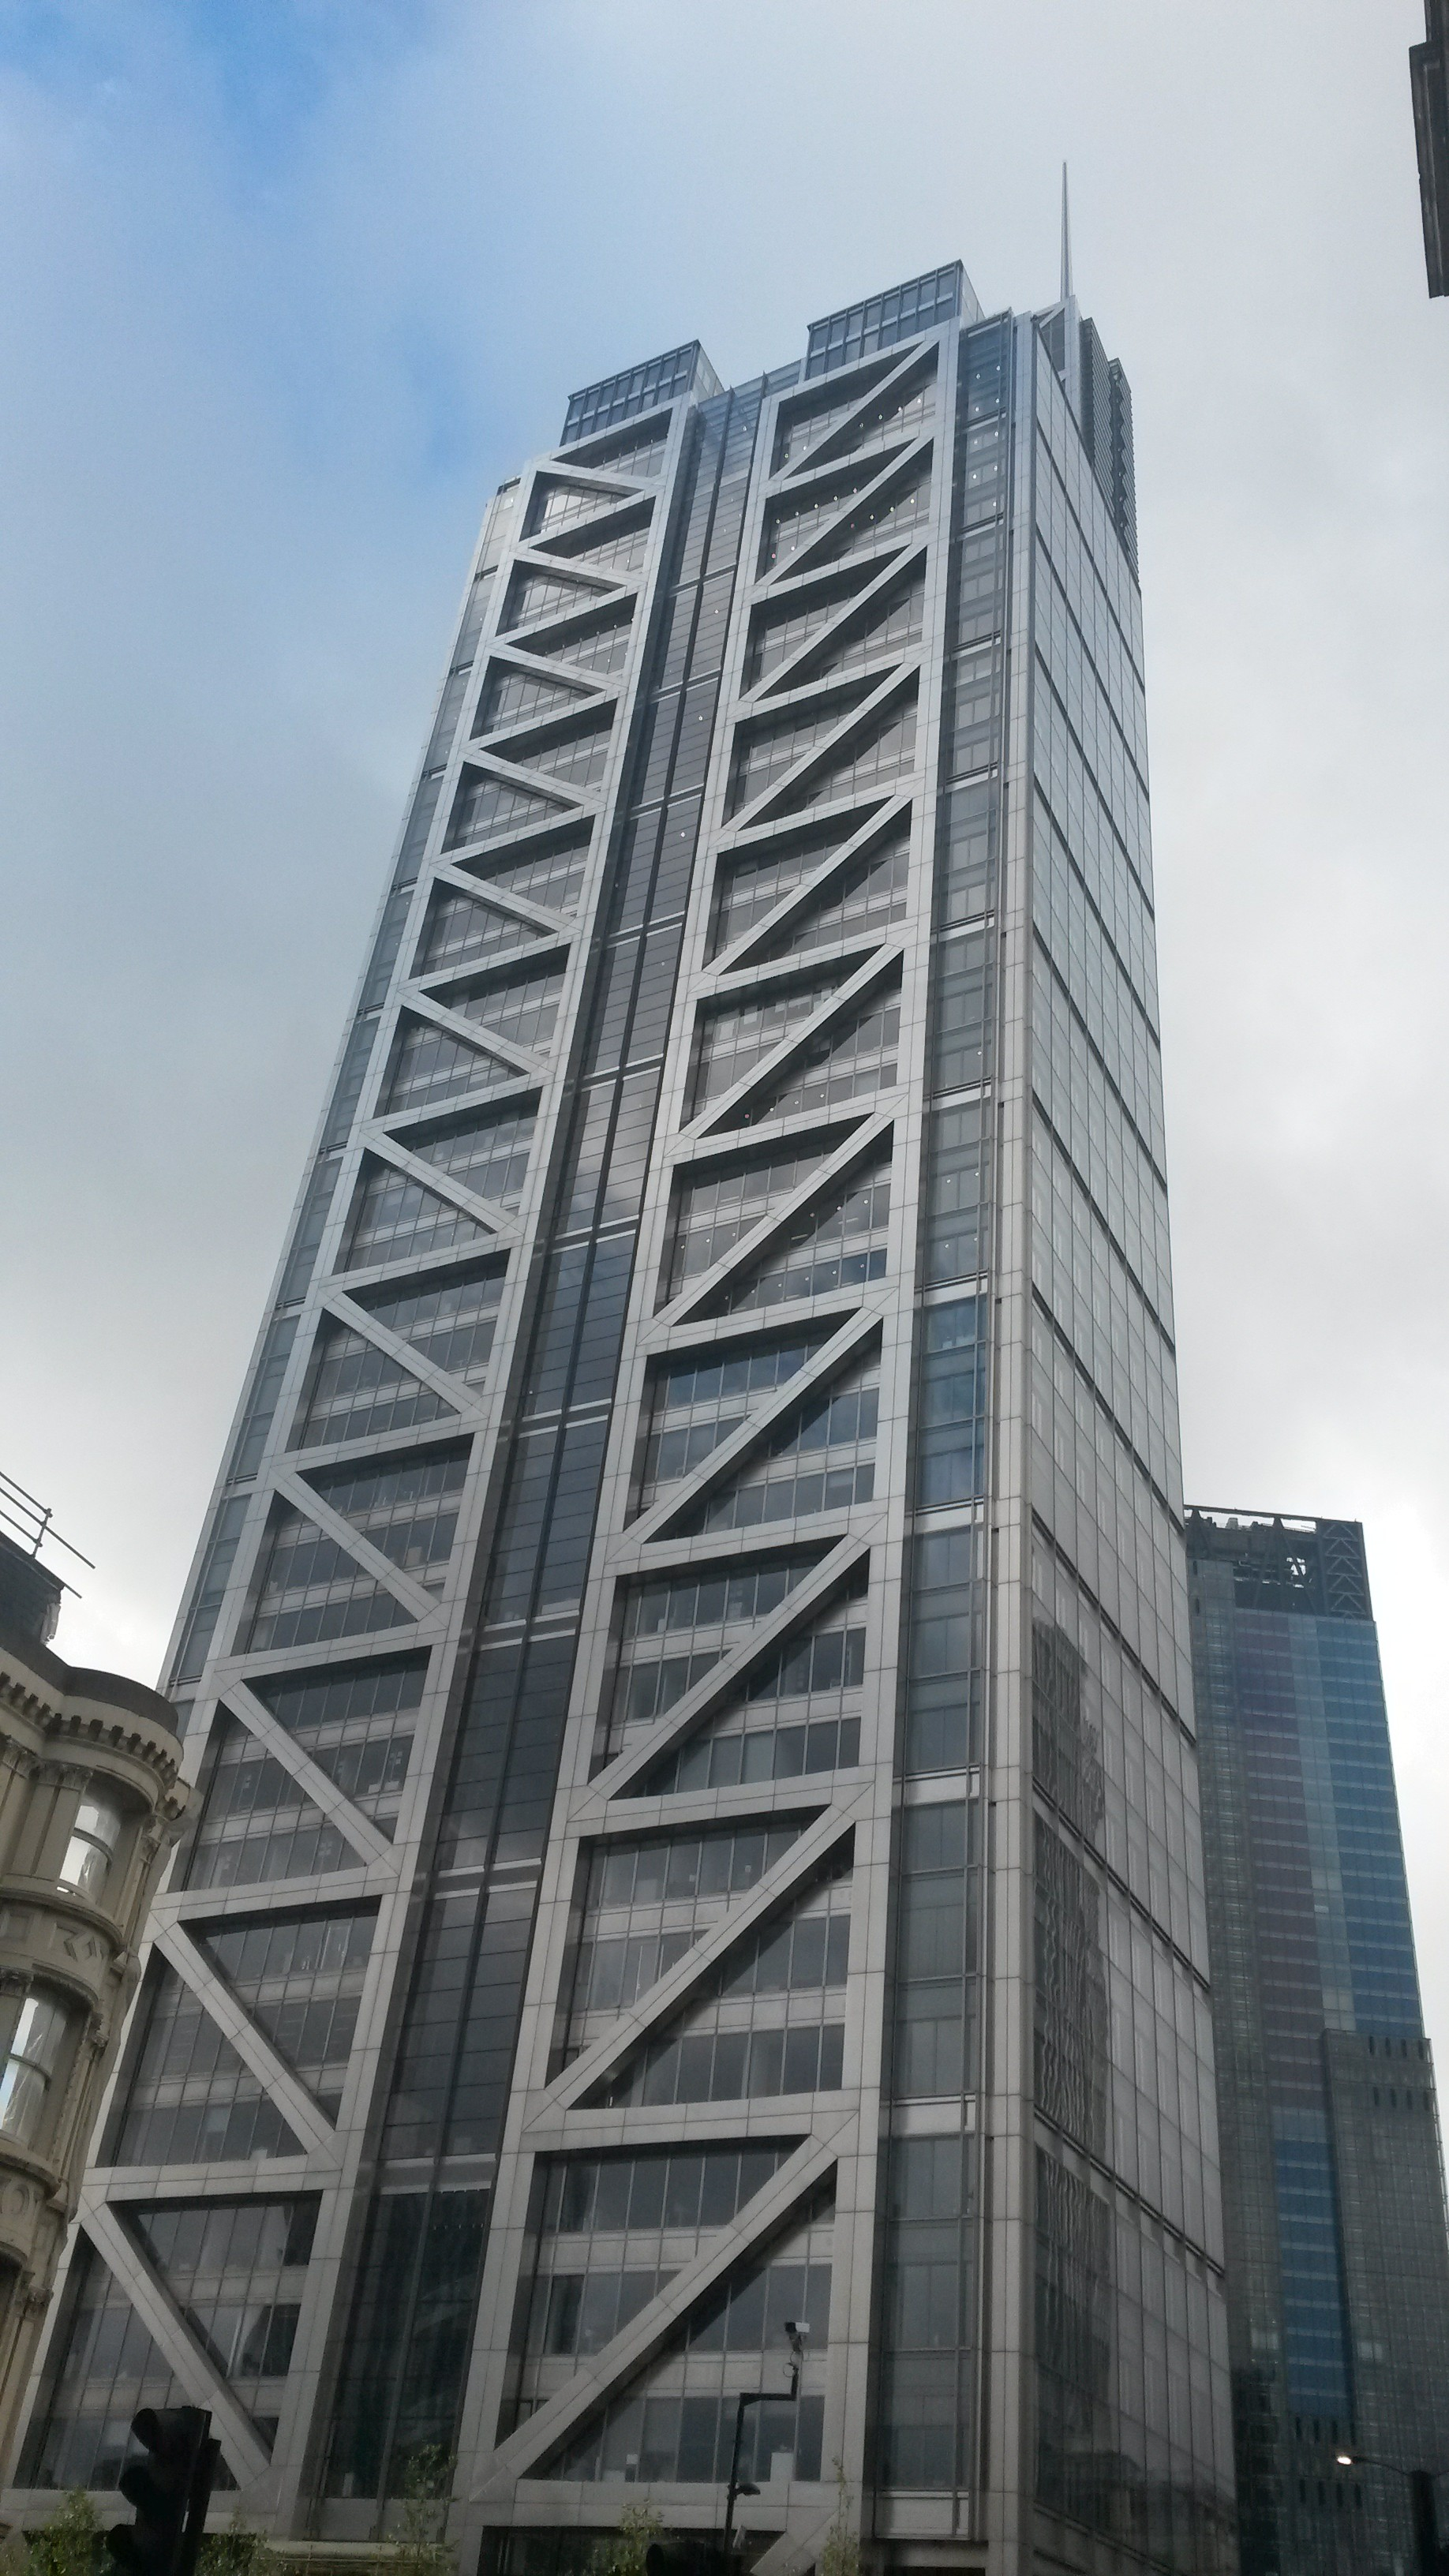 The Heron Tower, where Duck and Waffle is located in central London